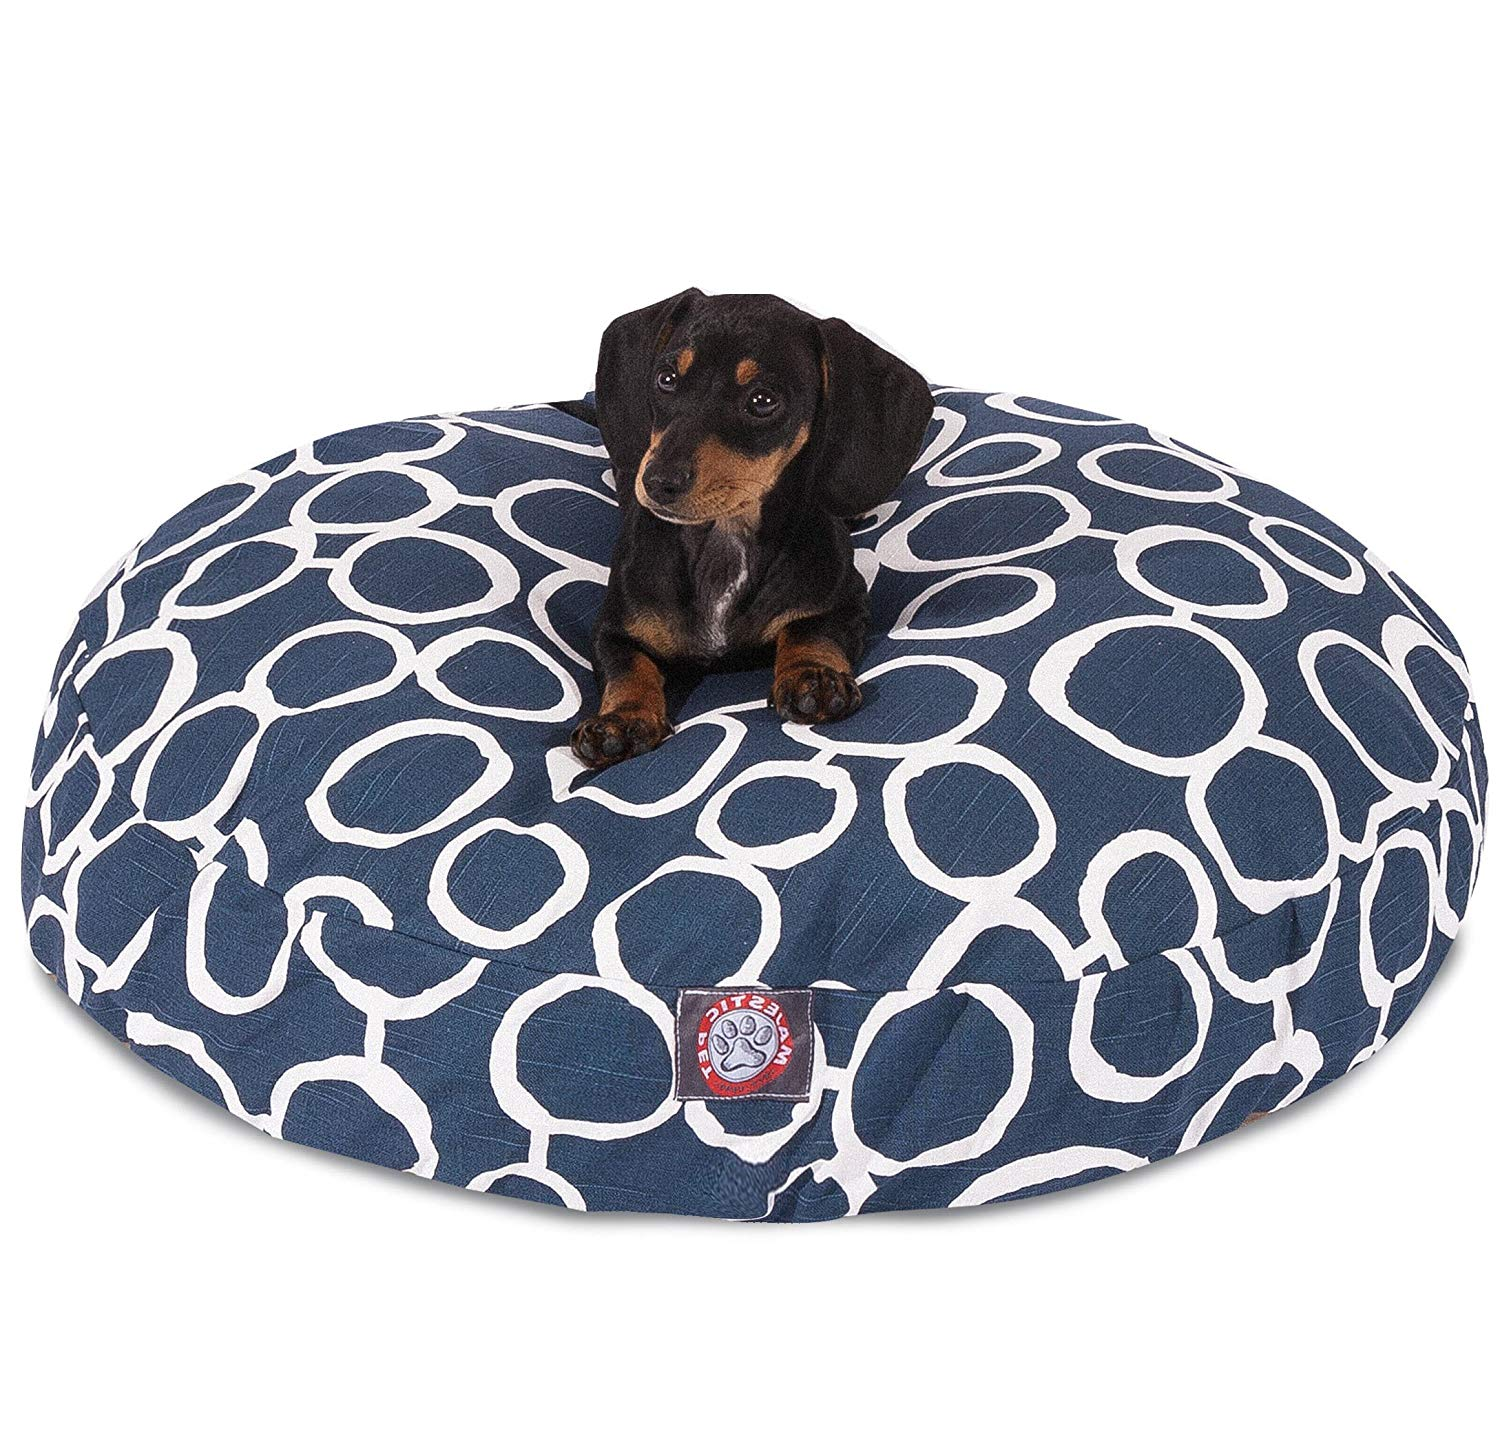 CU Small Navy Blue Circular Links Pattern Dog Bed, Beautiful Geometric Circles Print Pet Bedding, Round Shape, Features Water, Stain Resists, Removable Cover, Soft & Comfy Design, Cotton